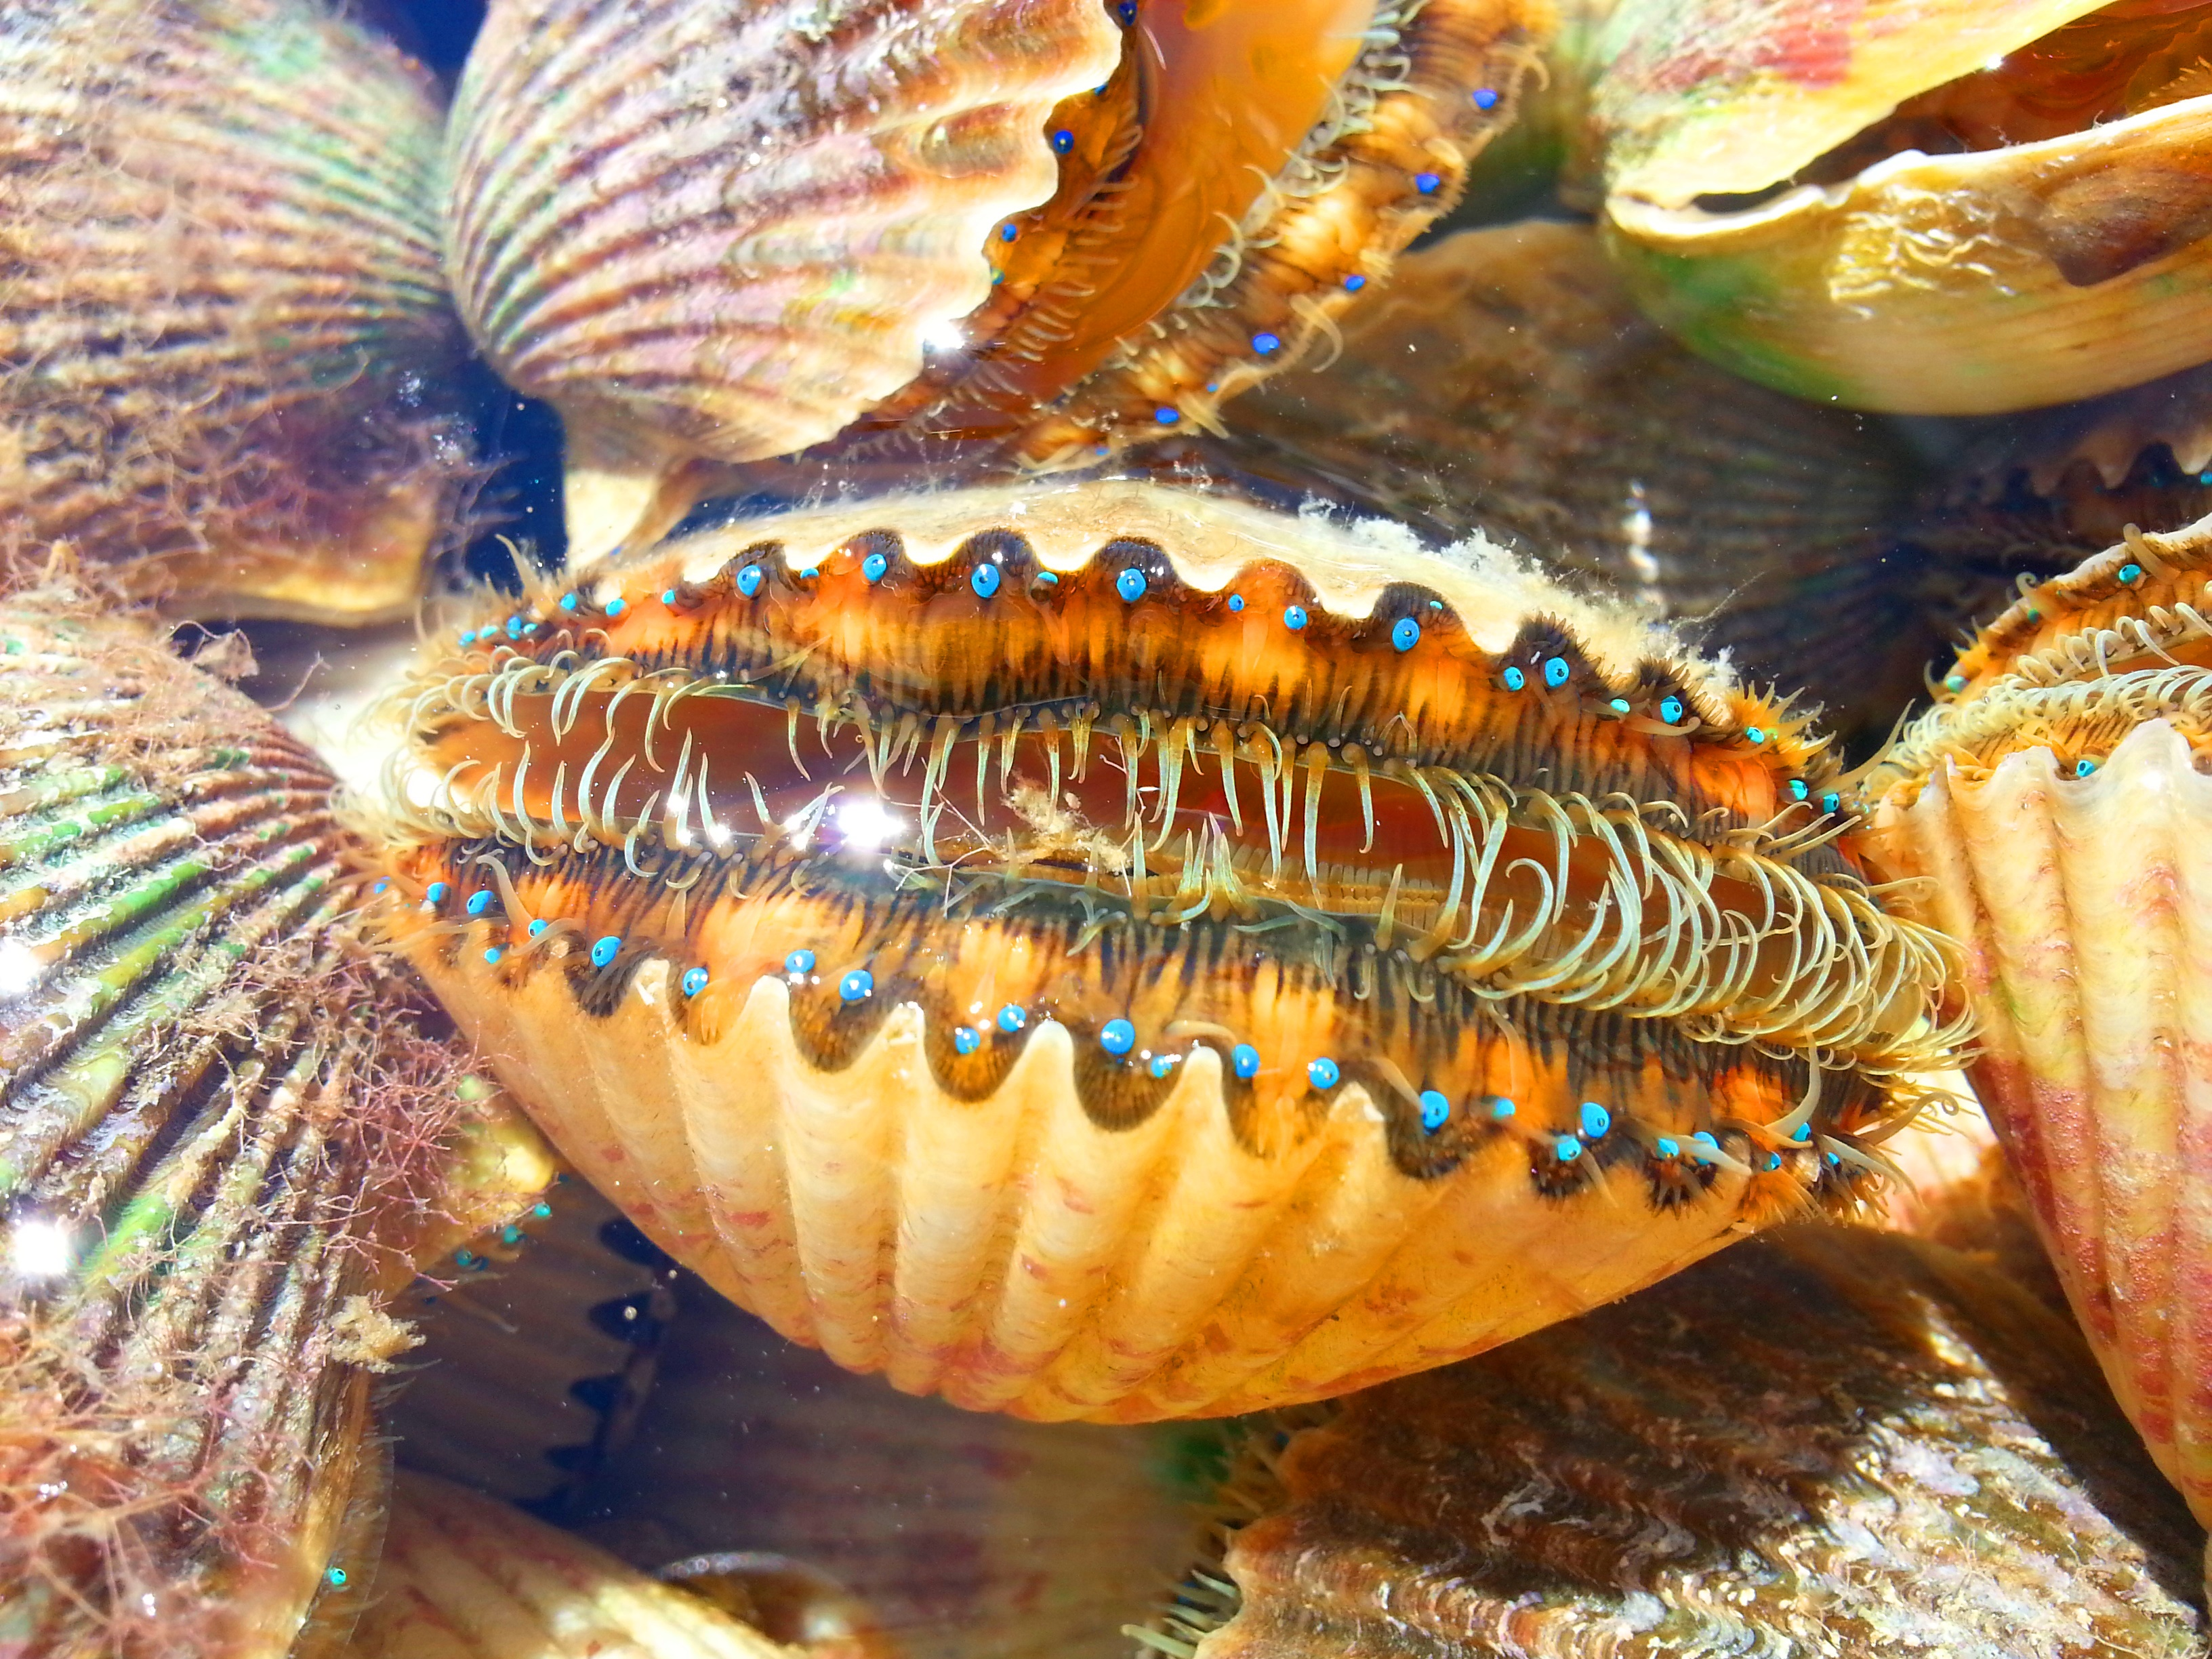 Scalloping in Florida? Stay at Plantation on Crystal River ...